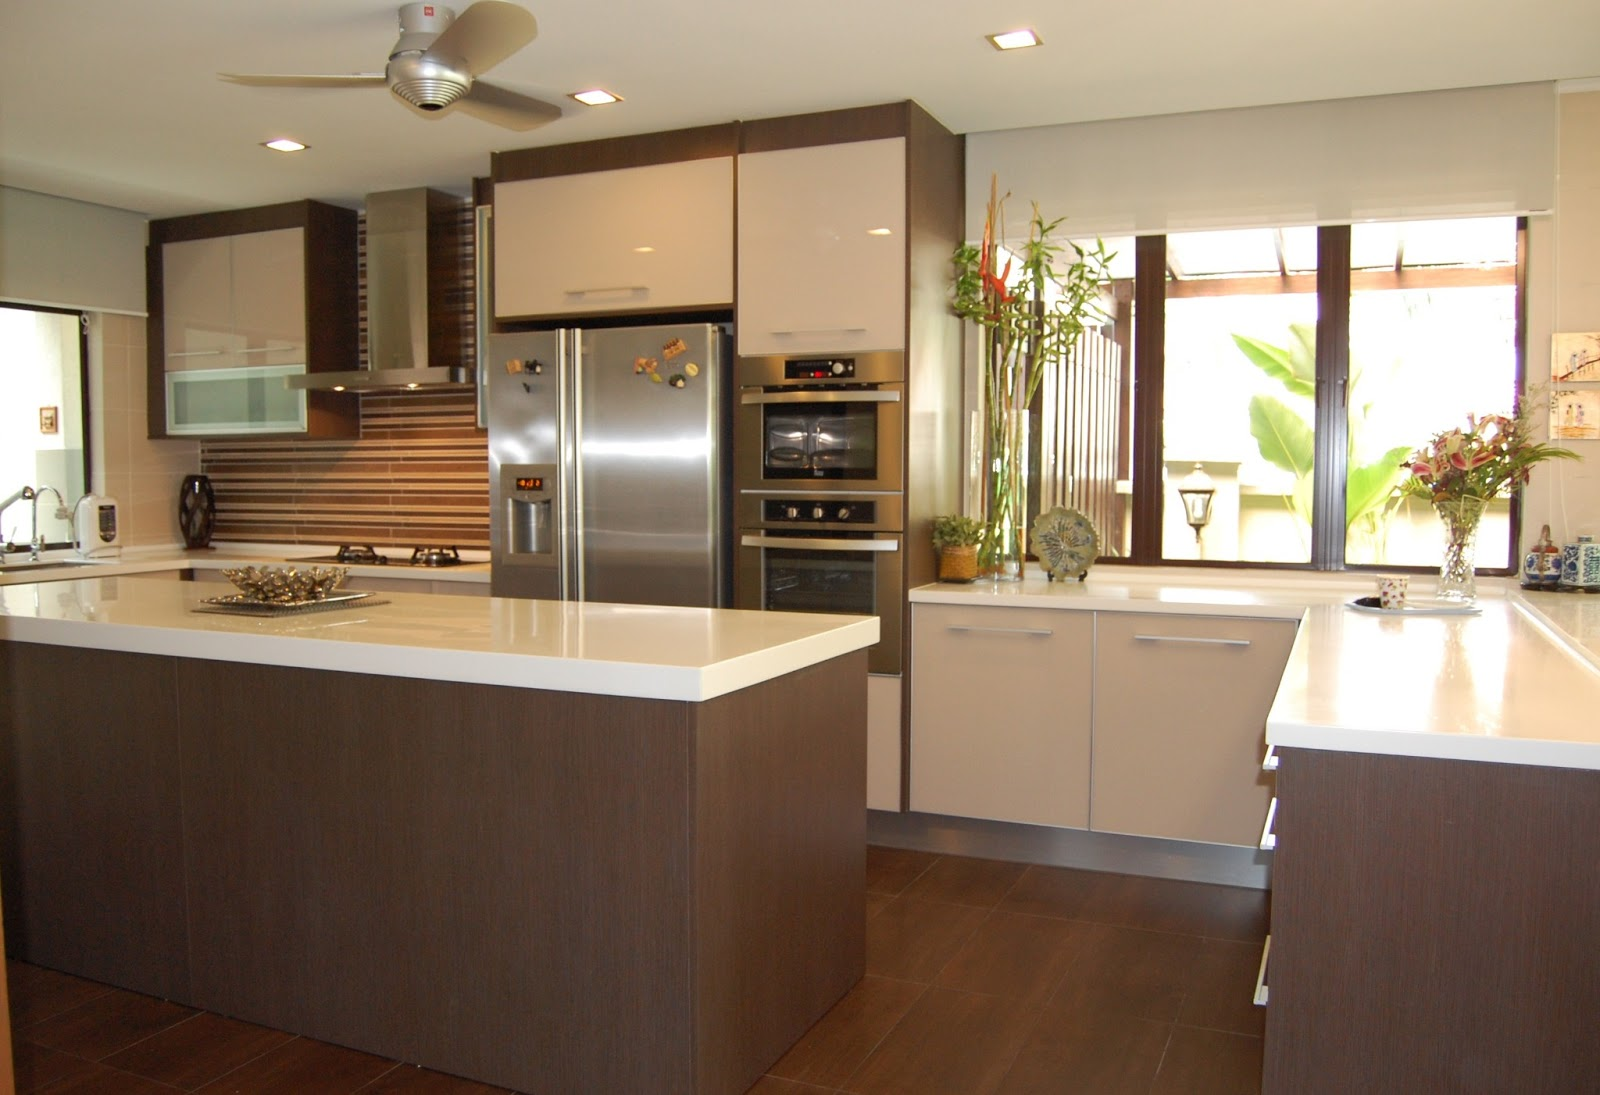 Kitchen Cabinets Price In Malaysia Meridian Design Kitchen Cabinet And Interior Design Blog